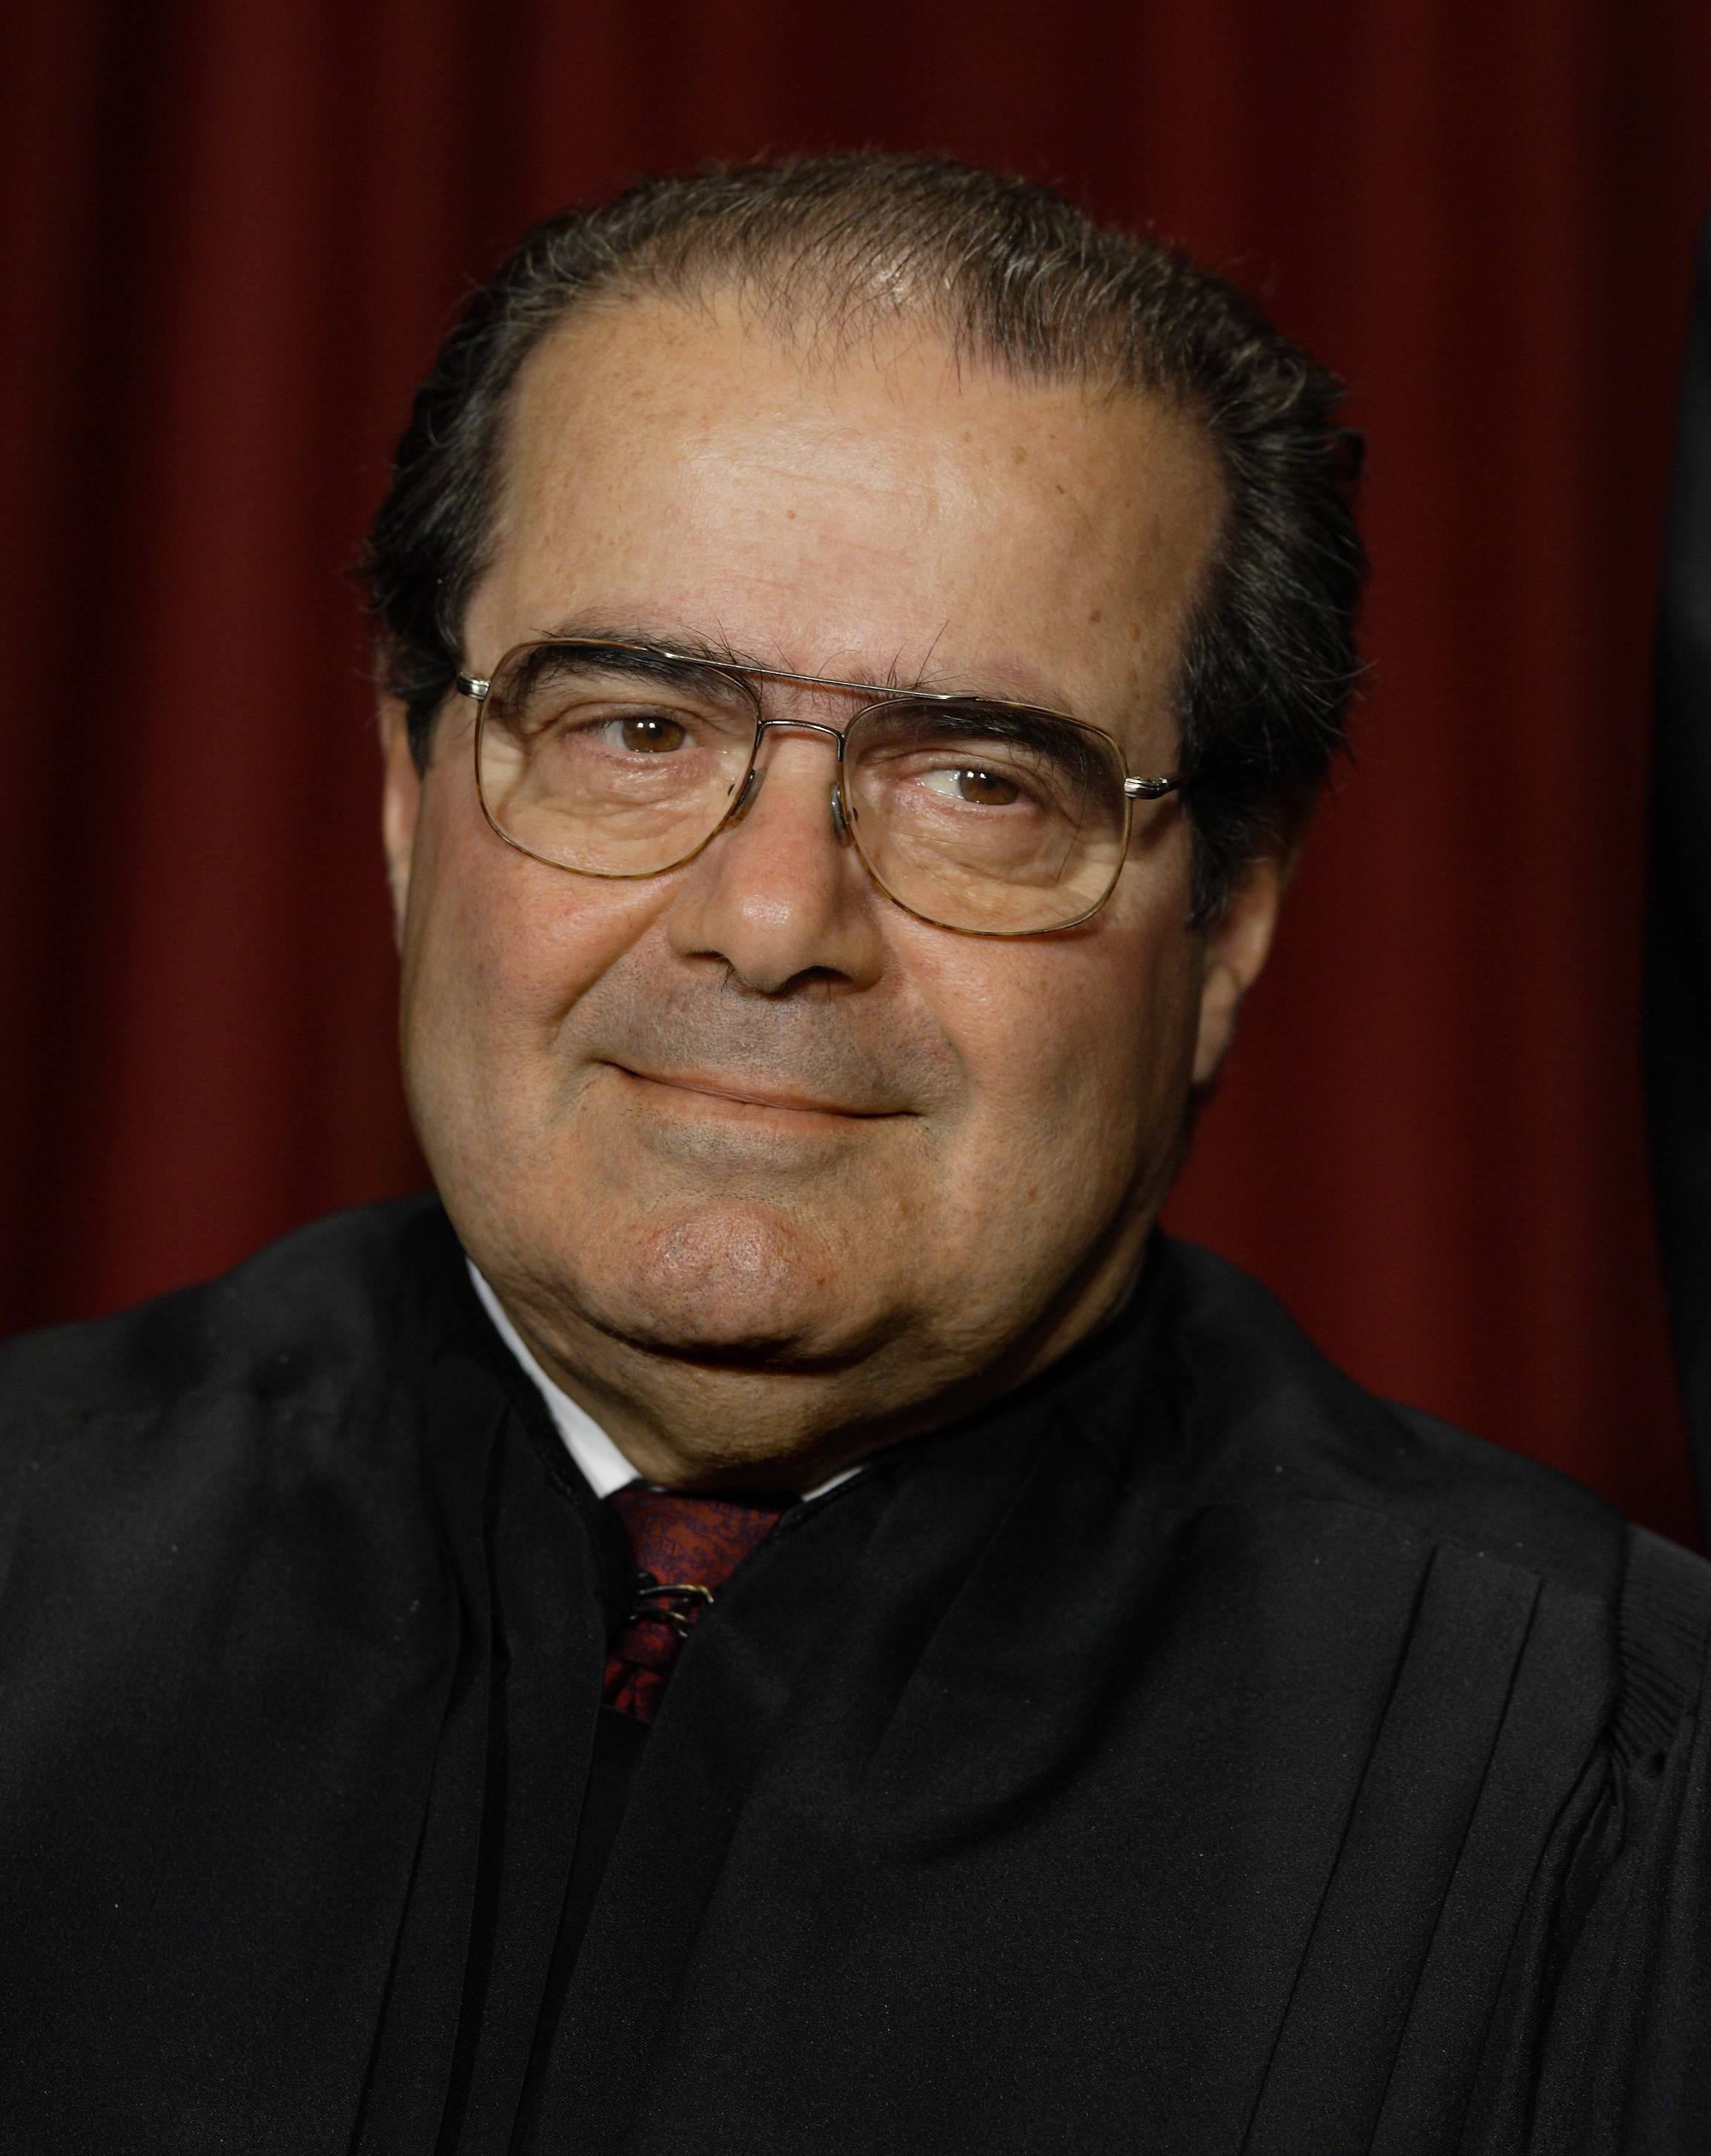 Scalia opening creates campaign fireworks here